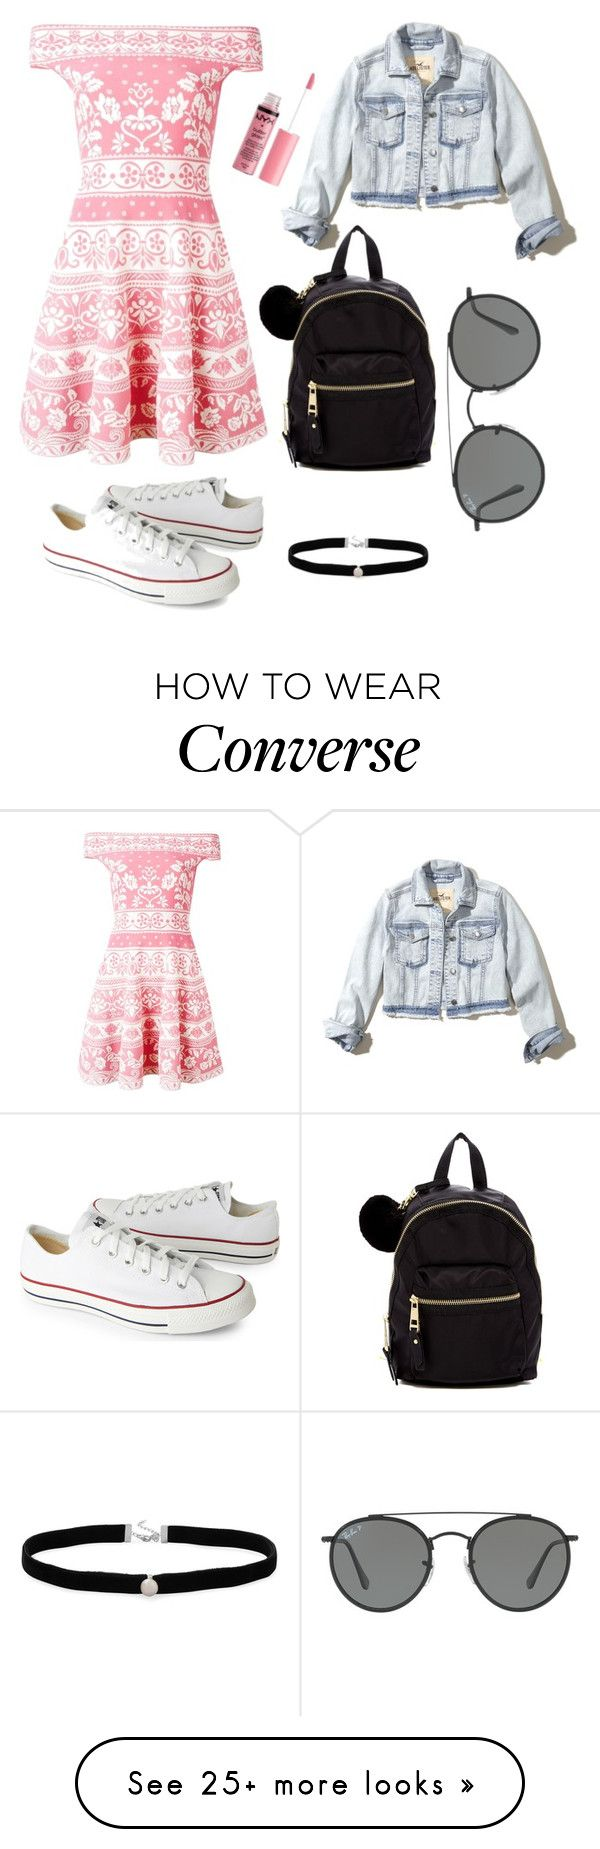 """Off the shoulder picnic"" by pollypmv on Polyvore featuring Alexander McQueen, Hollister Co., Madden Girl, Charlotte Russe, Amanda Rose Collection, Converse and Ray-Ban"